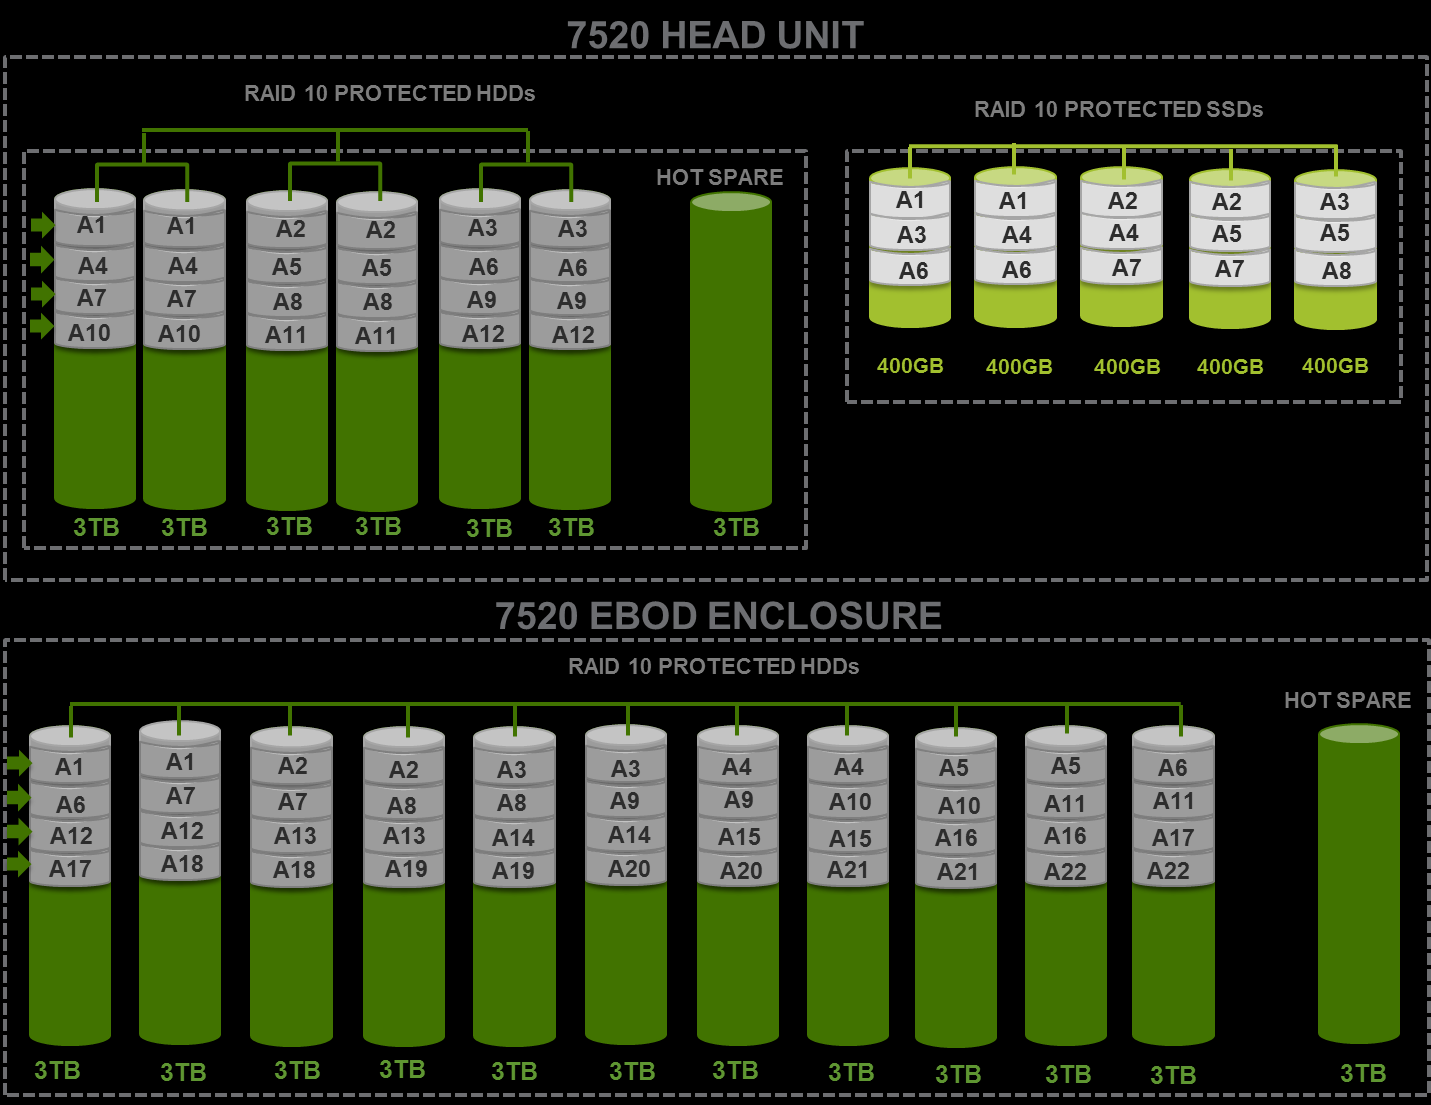 RAID Layout for 7520 For the head unit, a RAID 10 configuration is implemented for 6 (out of 7) HDDs and the 7 th acts as the hot spare. For the 5 SSDs, a RAID 10 configuration is employed.